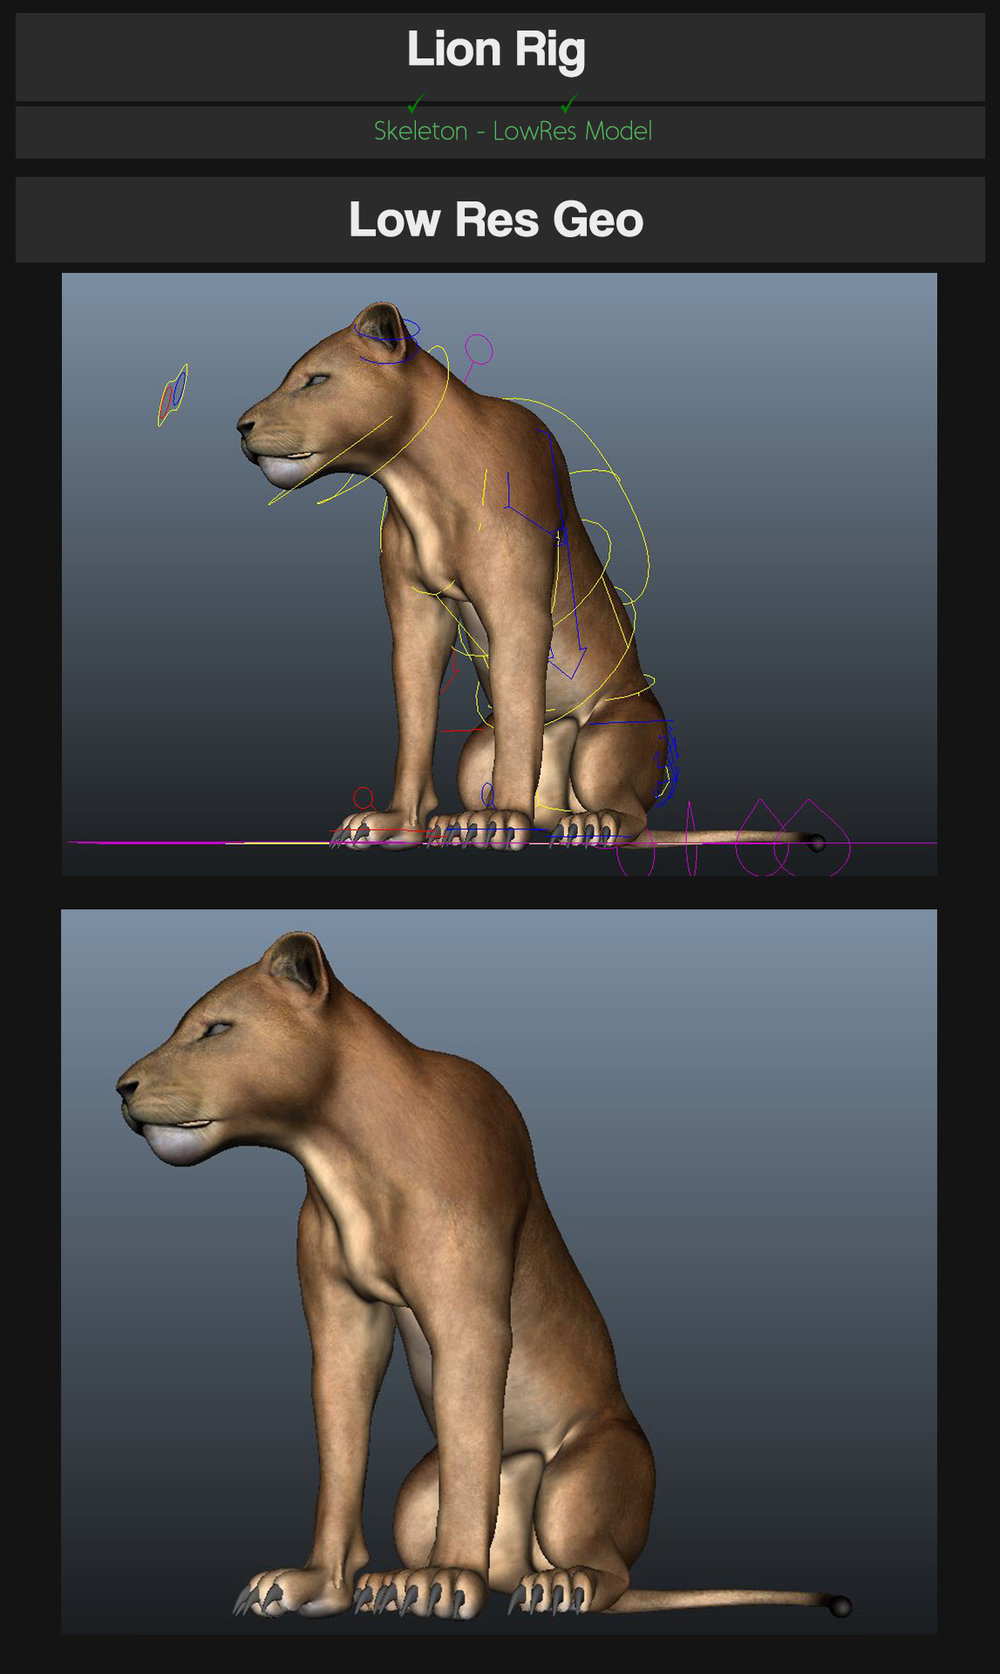 JT Lion   This is a decent realistic lion rig, cheap and animator friendly. DEMO of the Rig:  https://vimeo.com/141338061 https://www.youtube.com/watch?v=grjv1jZsqQs&feature=autoshare        *Features*   Rig is fully scaleable. ( Scale on the global CTRL, NOT the local control )   IK arms / legs.     Mouth control, with tongue rig inside.  Ribbon Spine  Skeleton / Low Res switch on Global CTRL.  Facial shapes (to be updated)  (snarl located on the head CTRL)  (eyeClose located on eye CTRL)